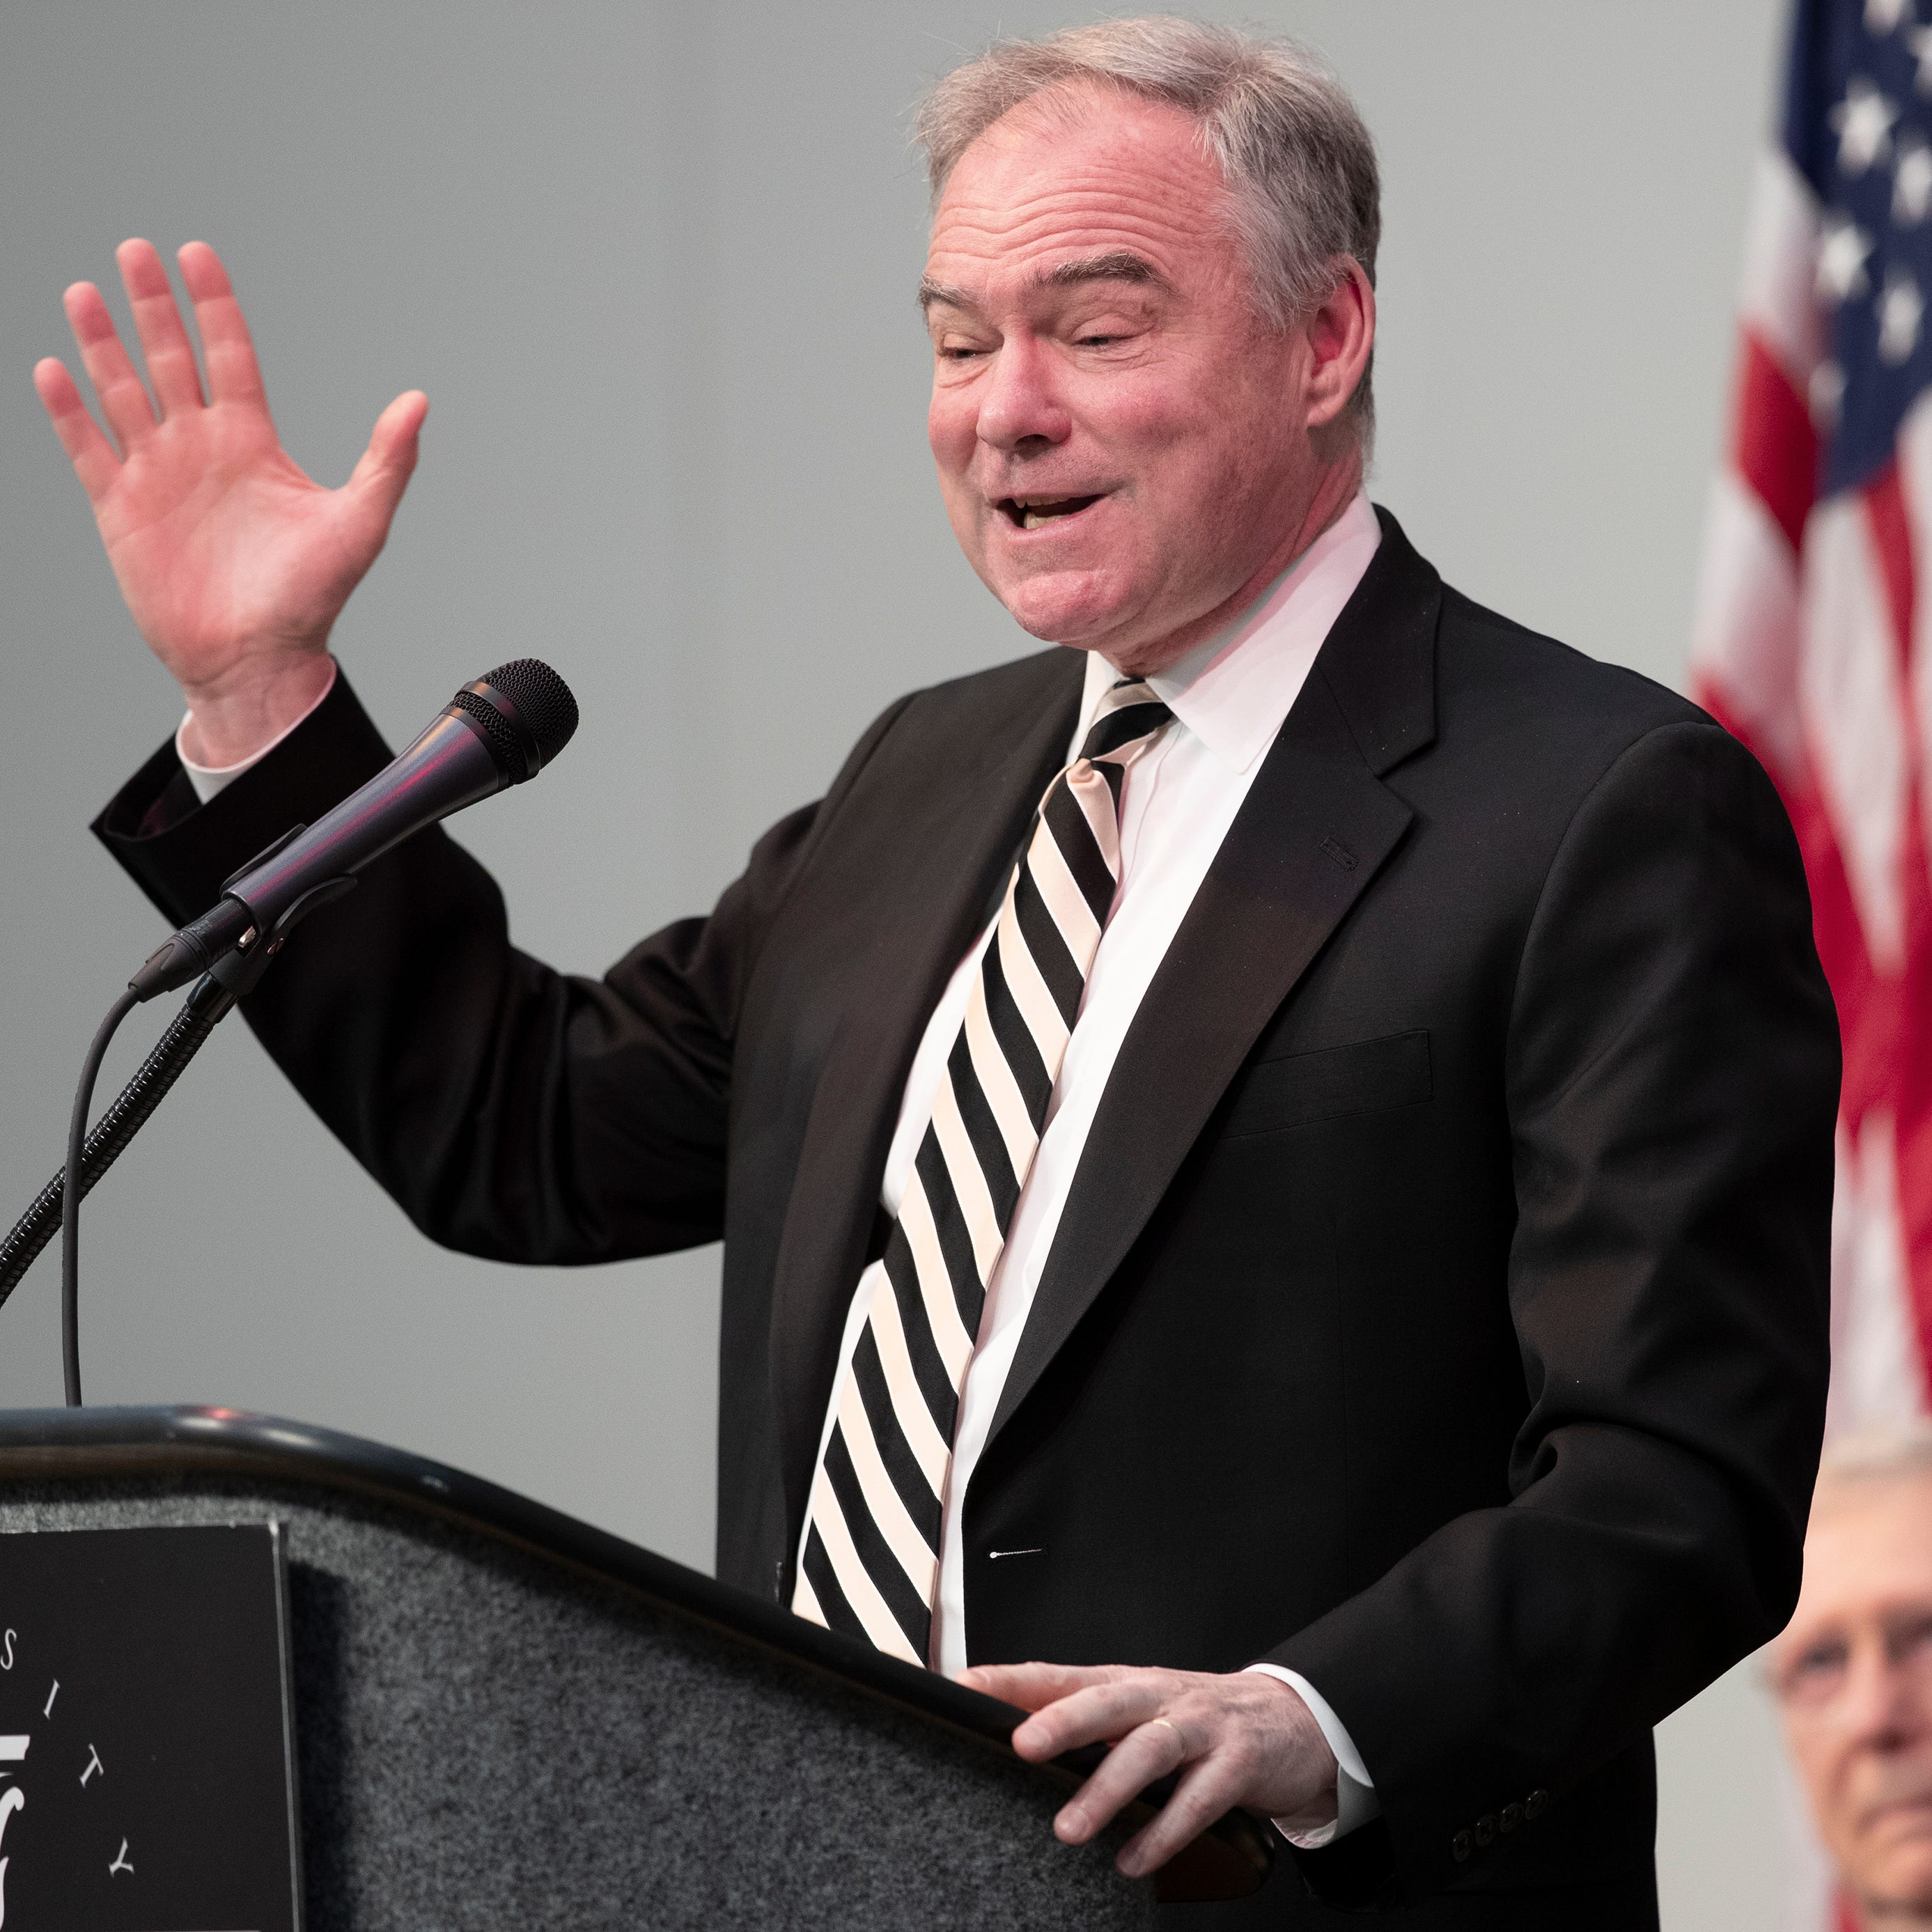 Sen. Tim Kaine: Military spouses deserve better employment opportunities